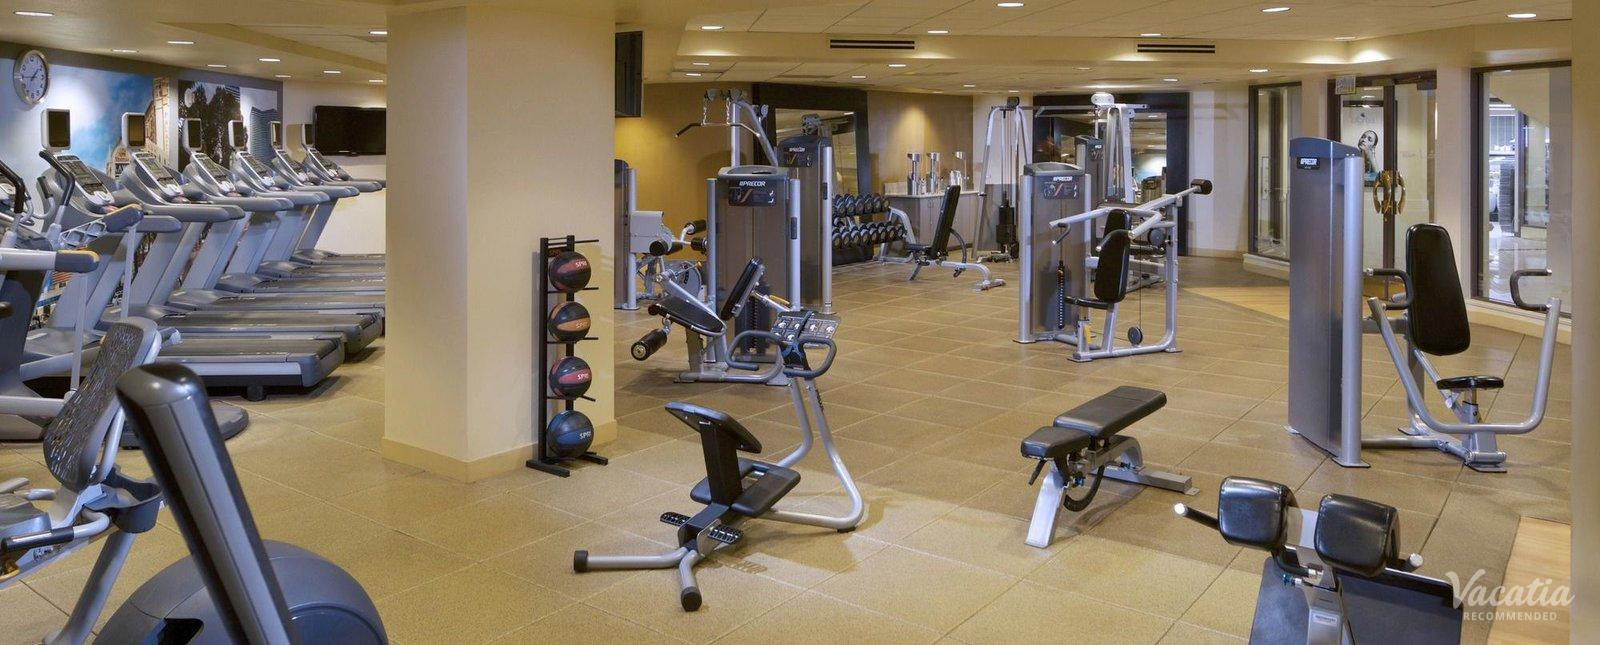 Hilton Grand Vacations on the Las Vegas Strip Fitness Center